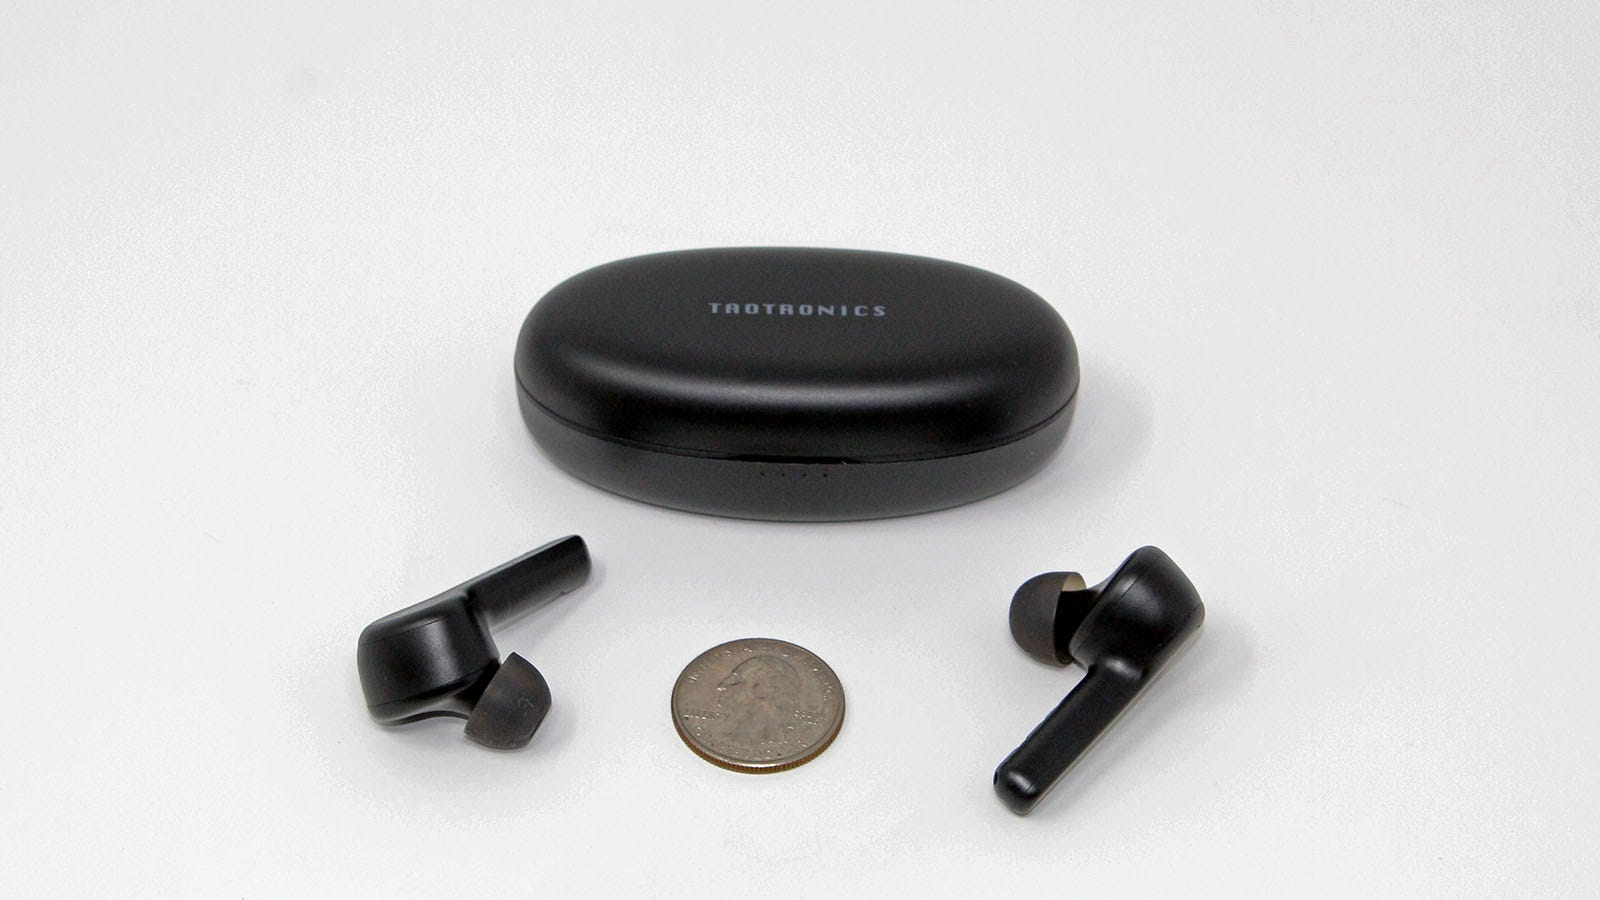 The TaoTronics case, earbuds, and a quarter.